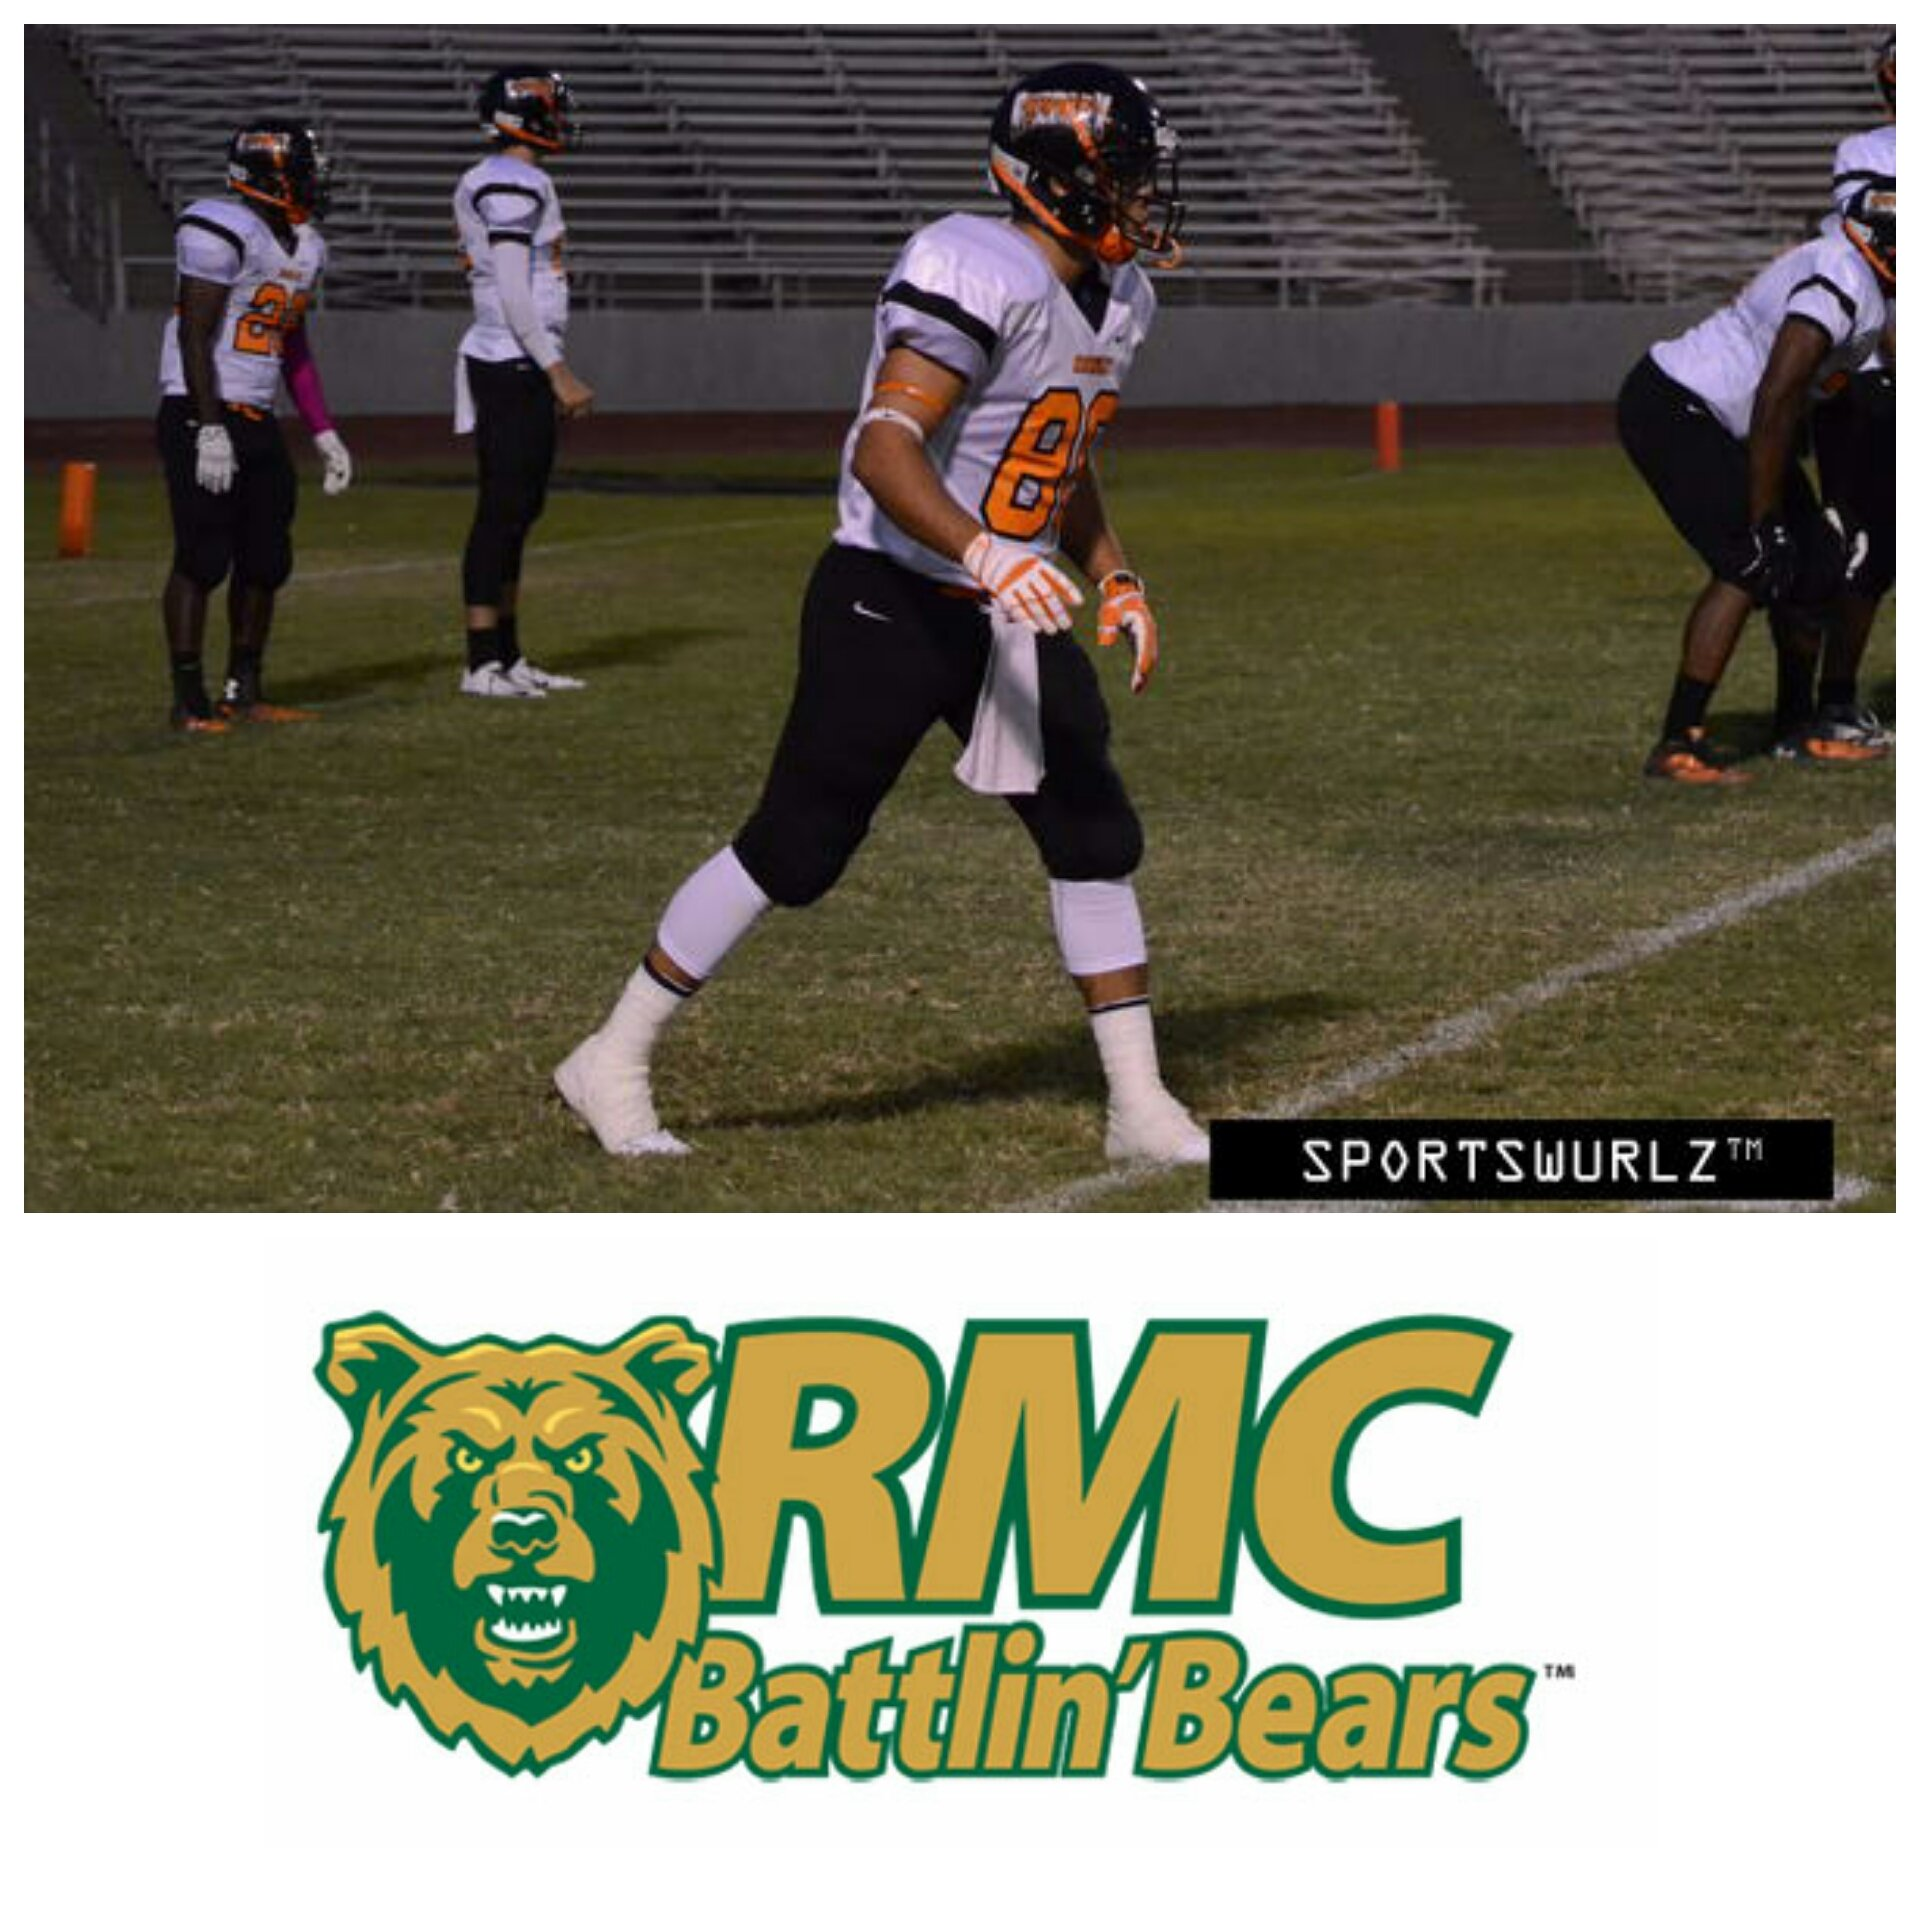 austin weakley on its official going to rocky austin weakley on its official going to rocky mountain college in billings montana to play football 127944128175128591 t co 6pfddxkogu